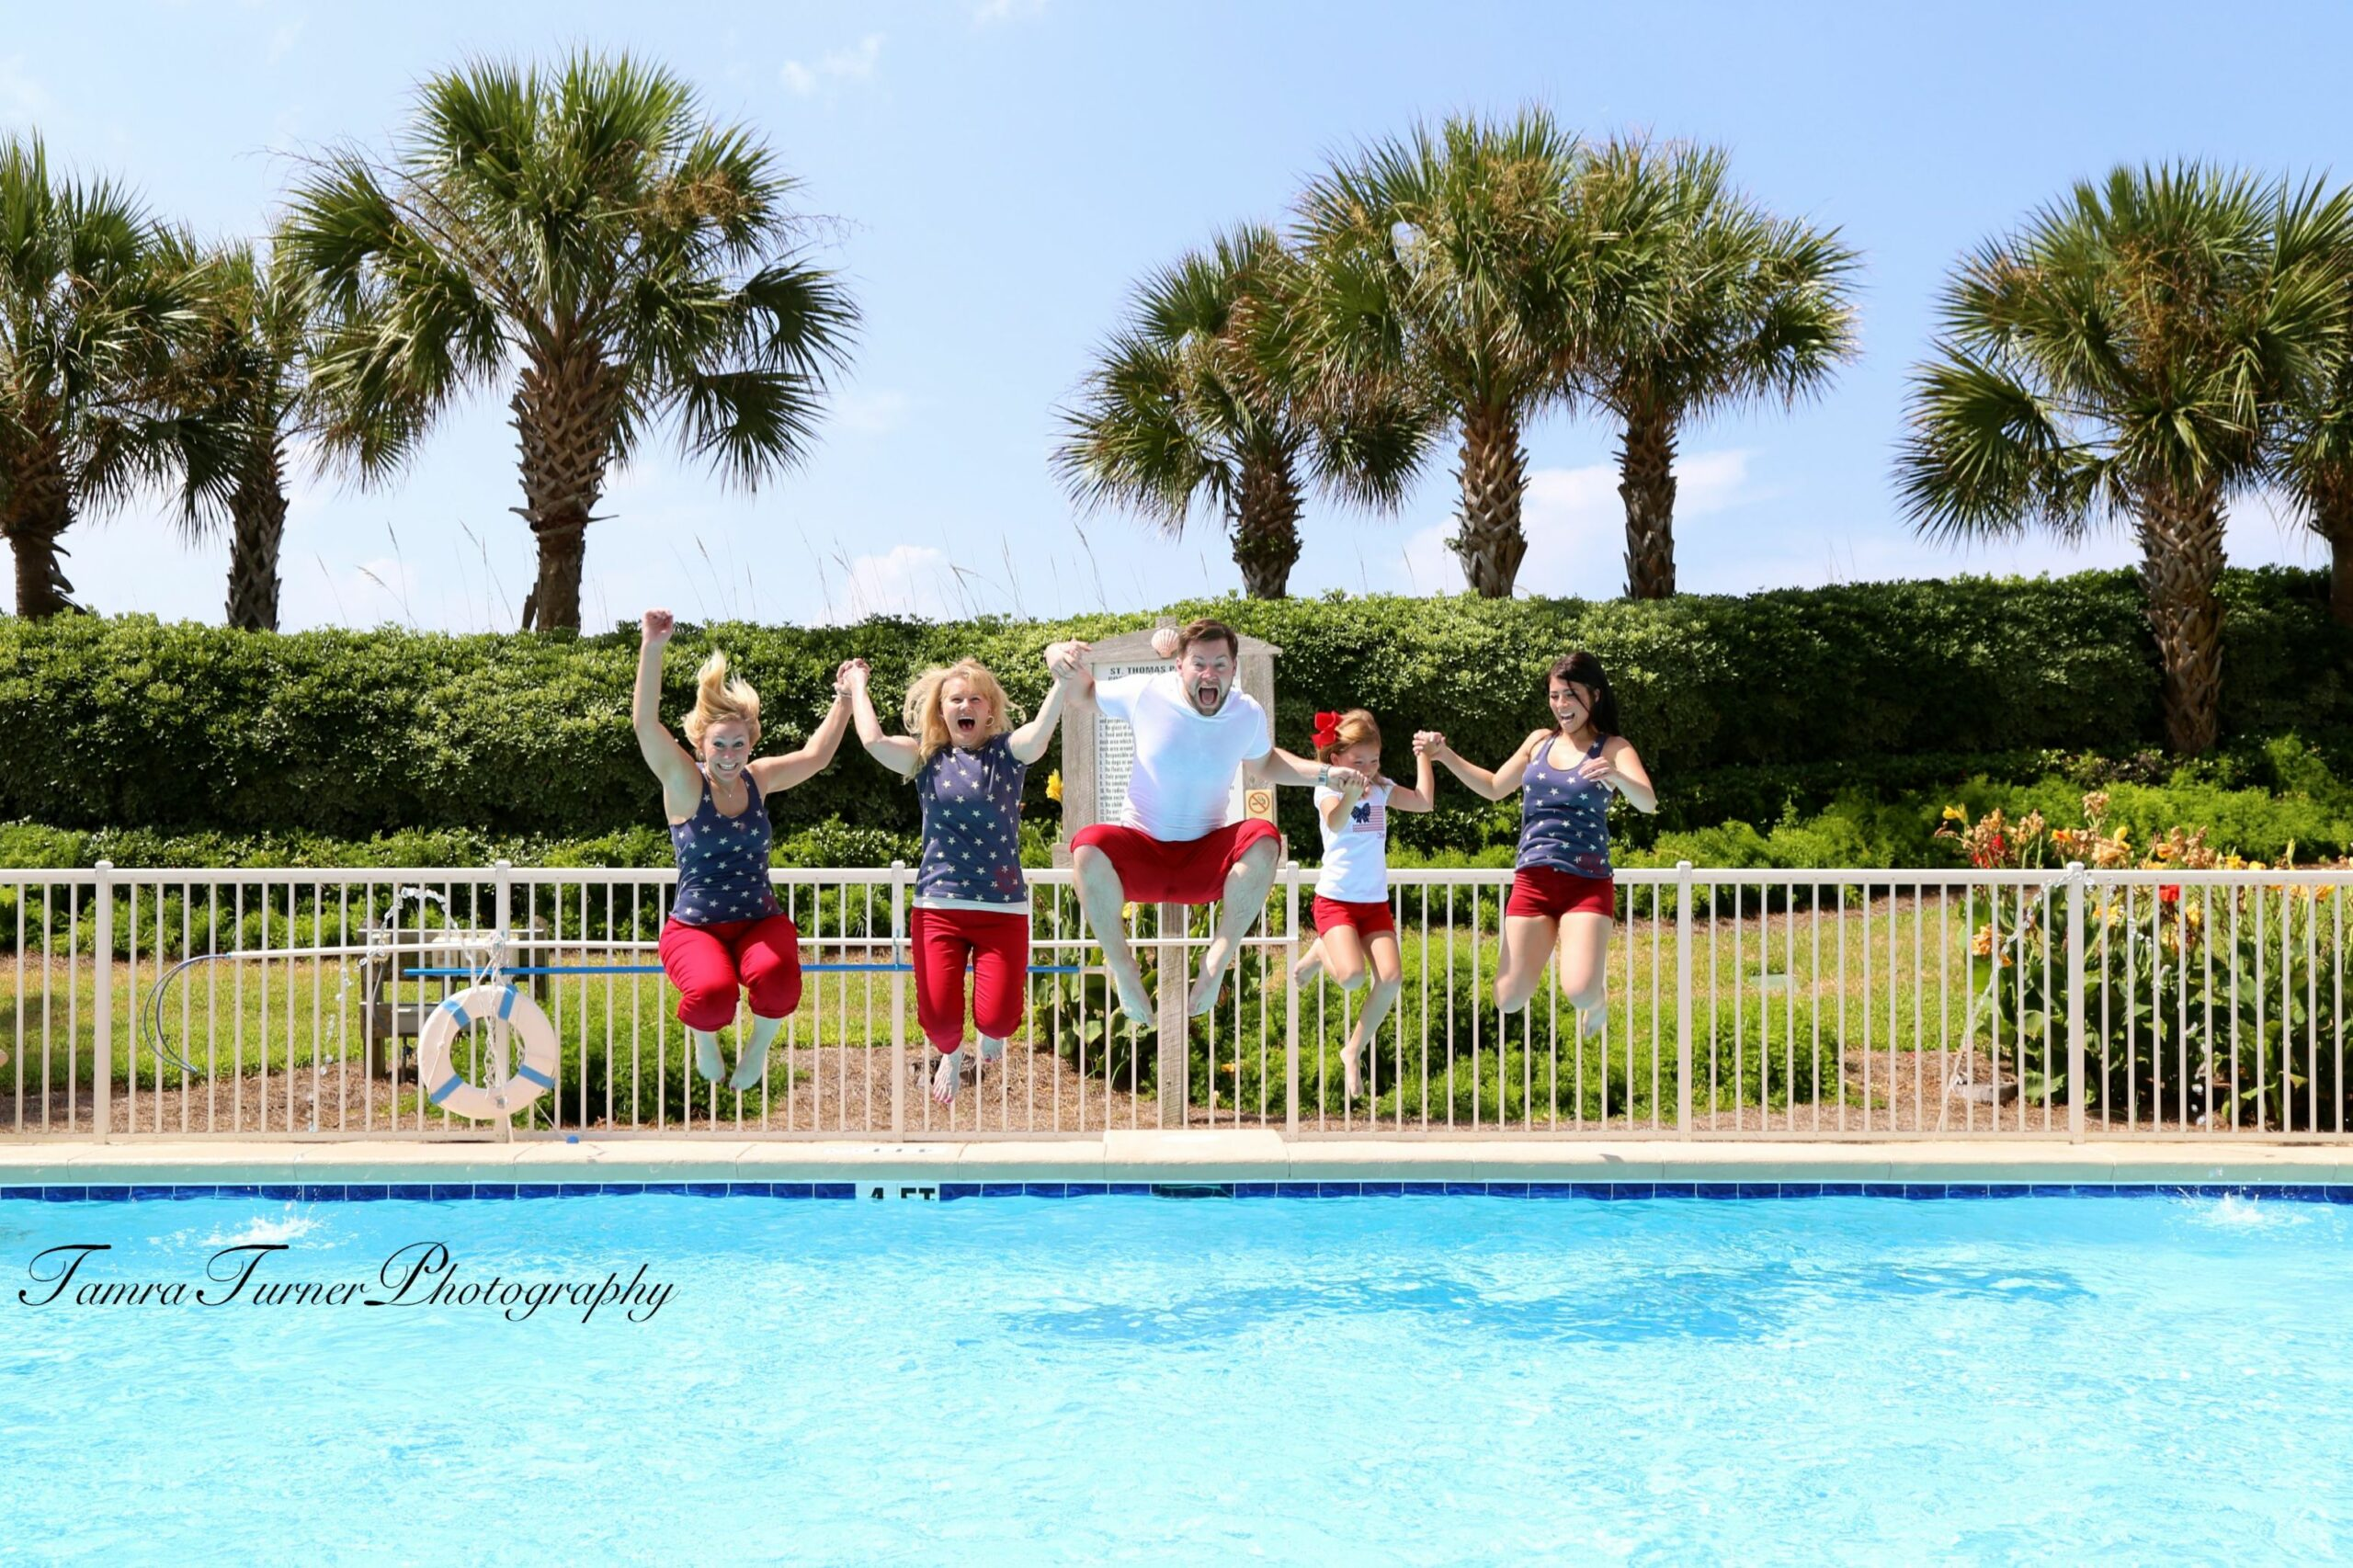 Fun summer family photo session, jump in the pool, be brave, have ..